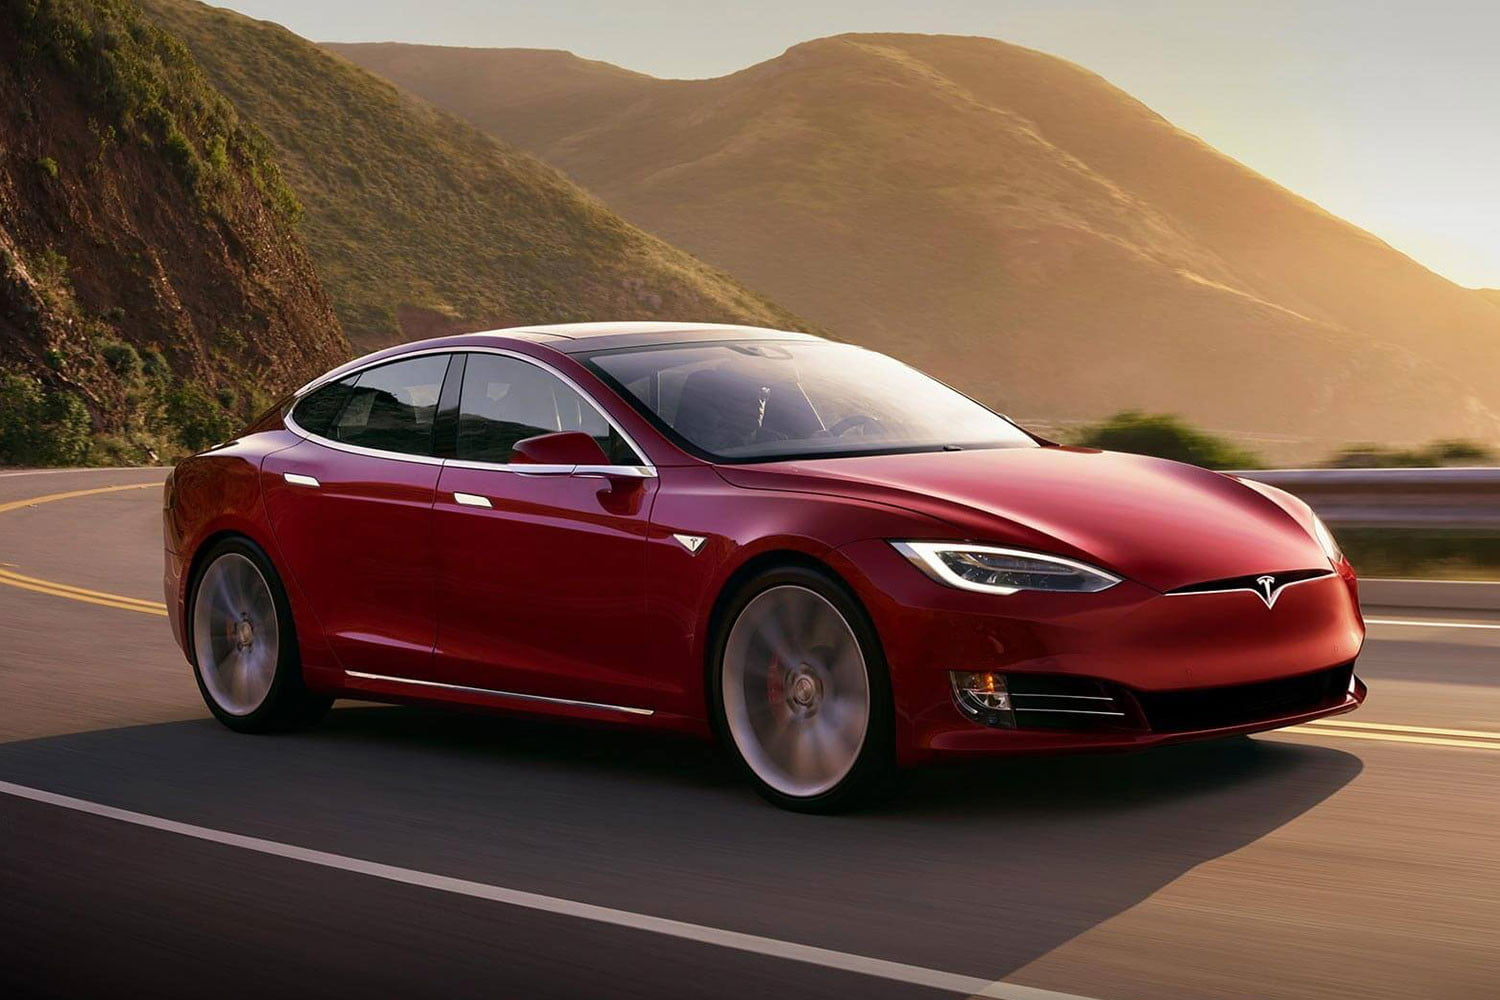 Tesla is working on an even more insane performance version of the Model S